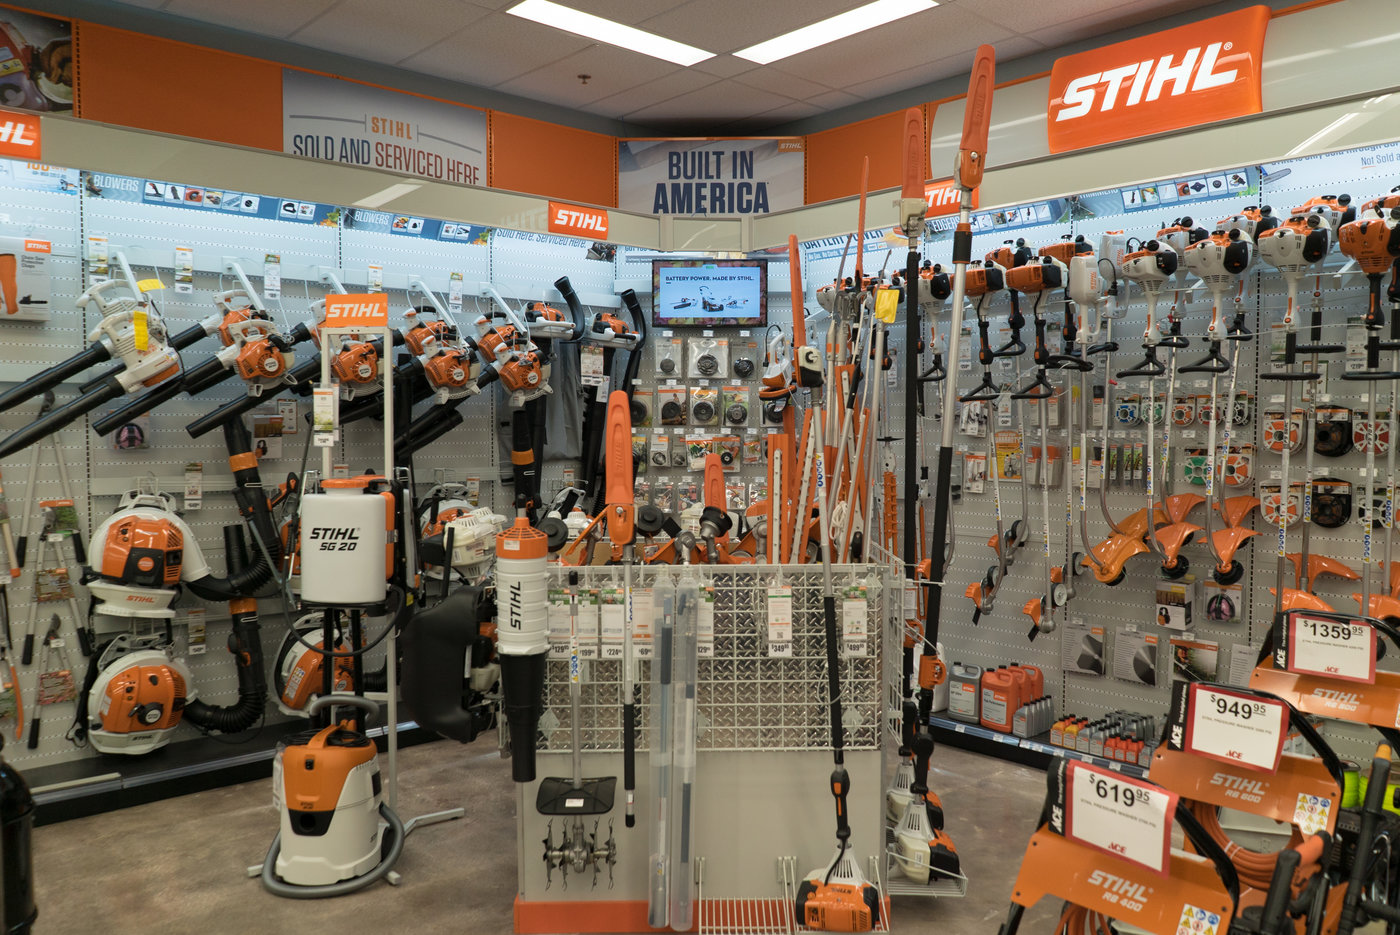 What used to be the photo department at Walgreens has been transformed into sales and service for Stihl outdoor power equipment.